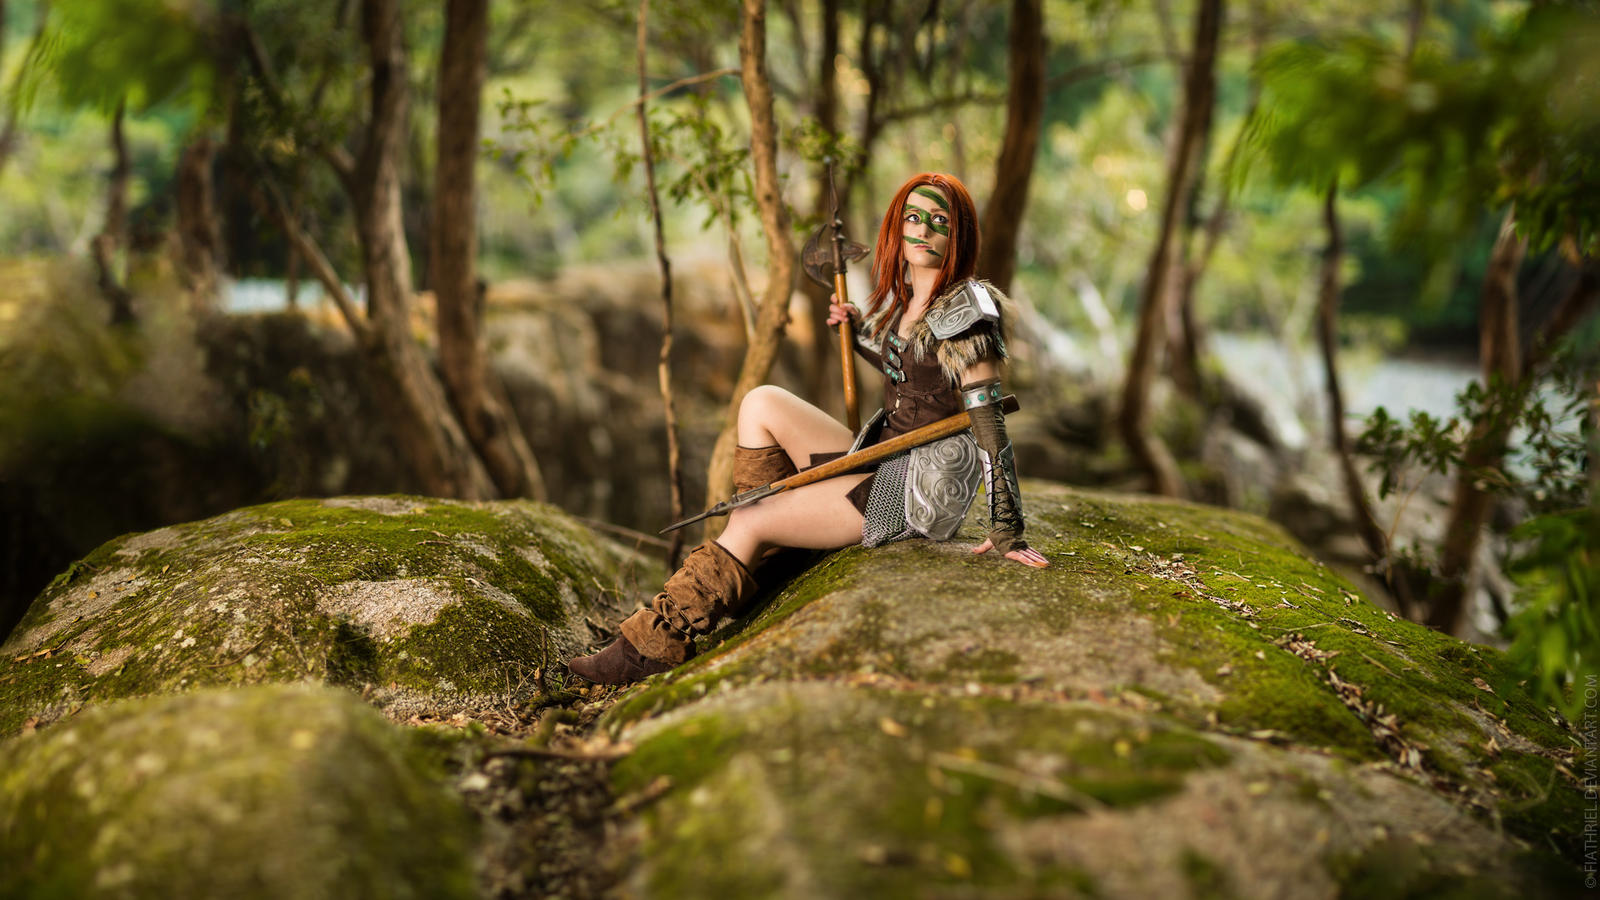 Skyrim - Aela The Huntress II by fiathriel